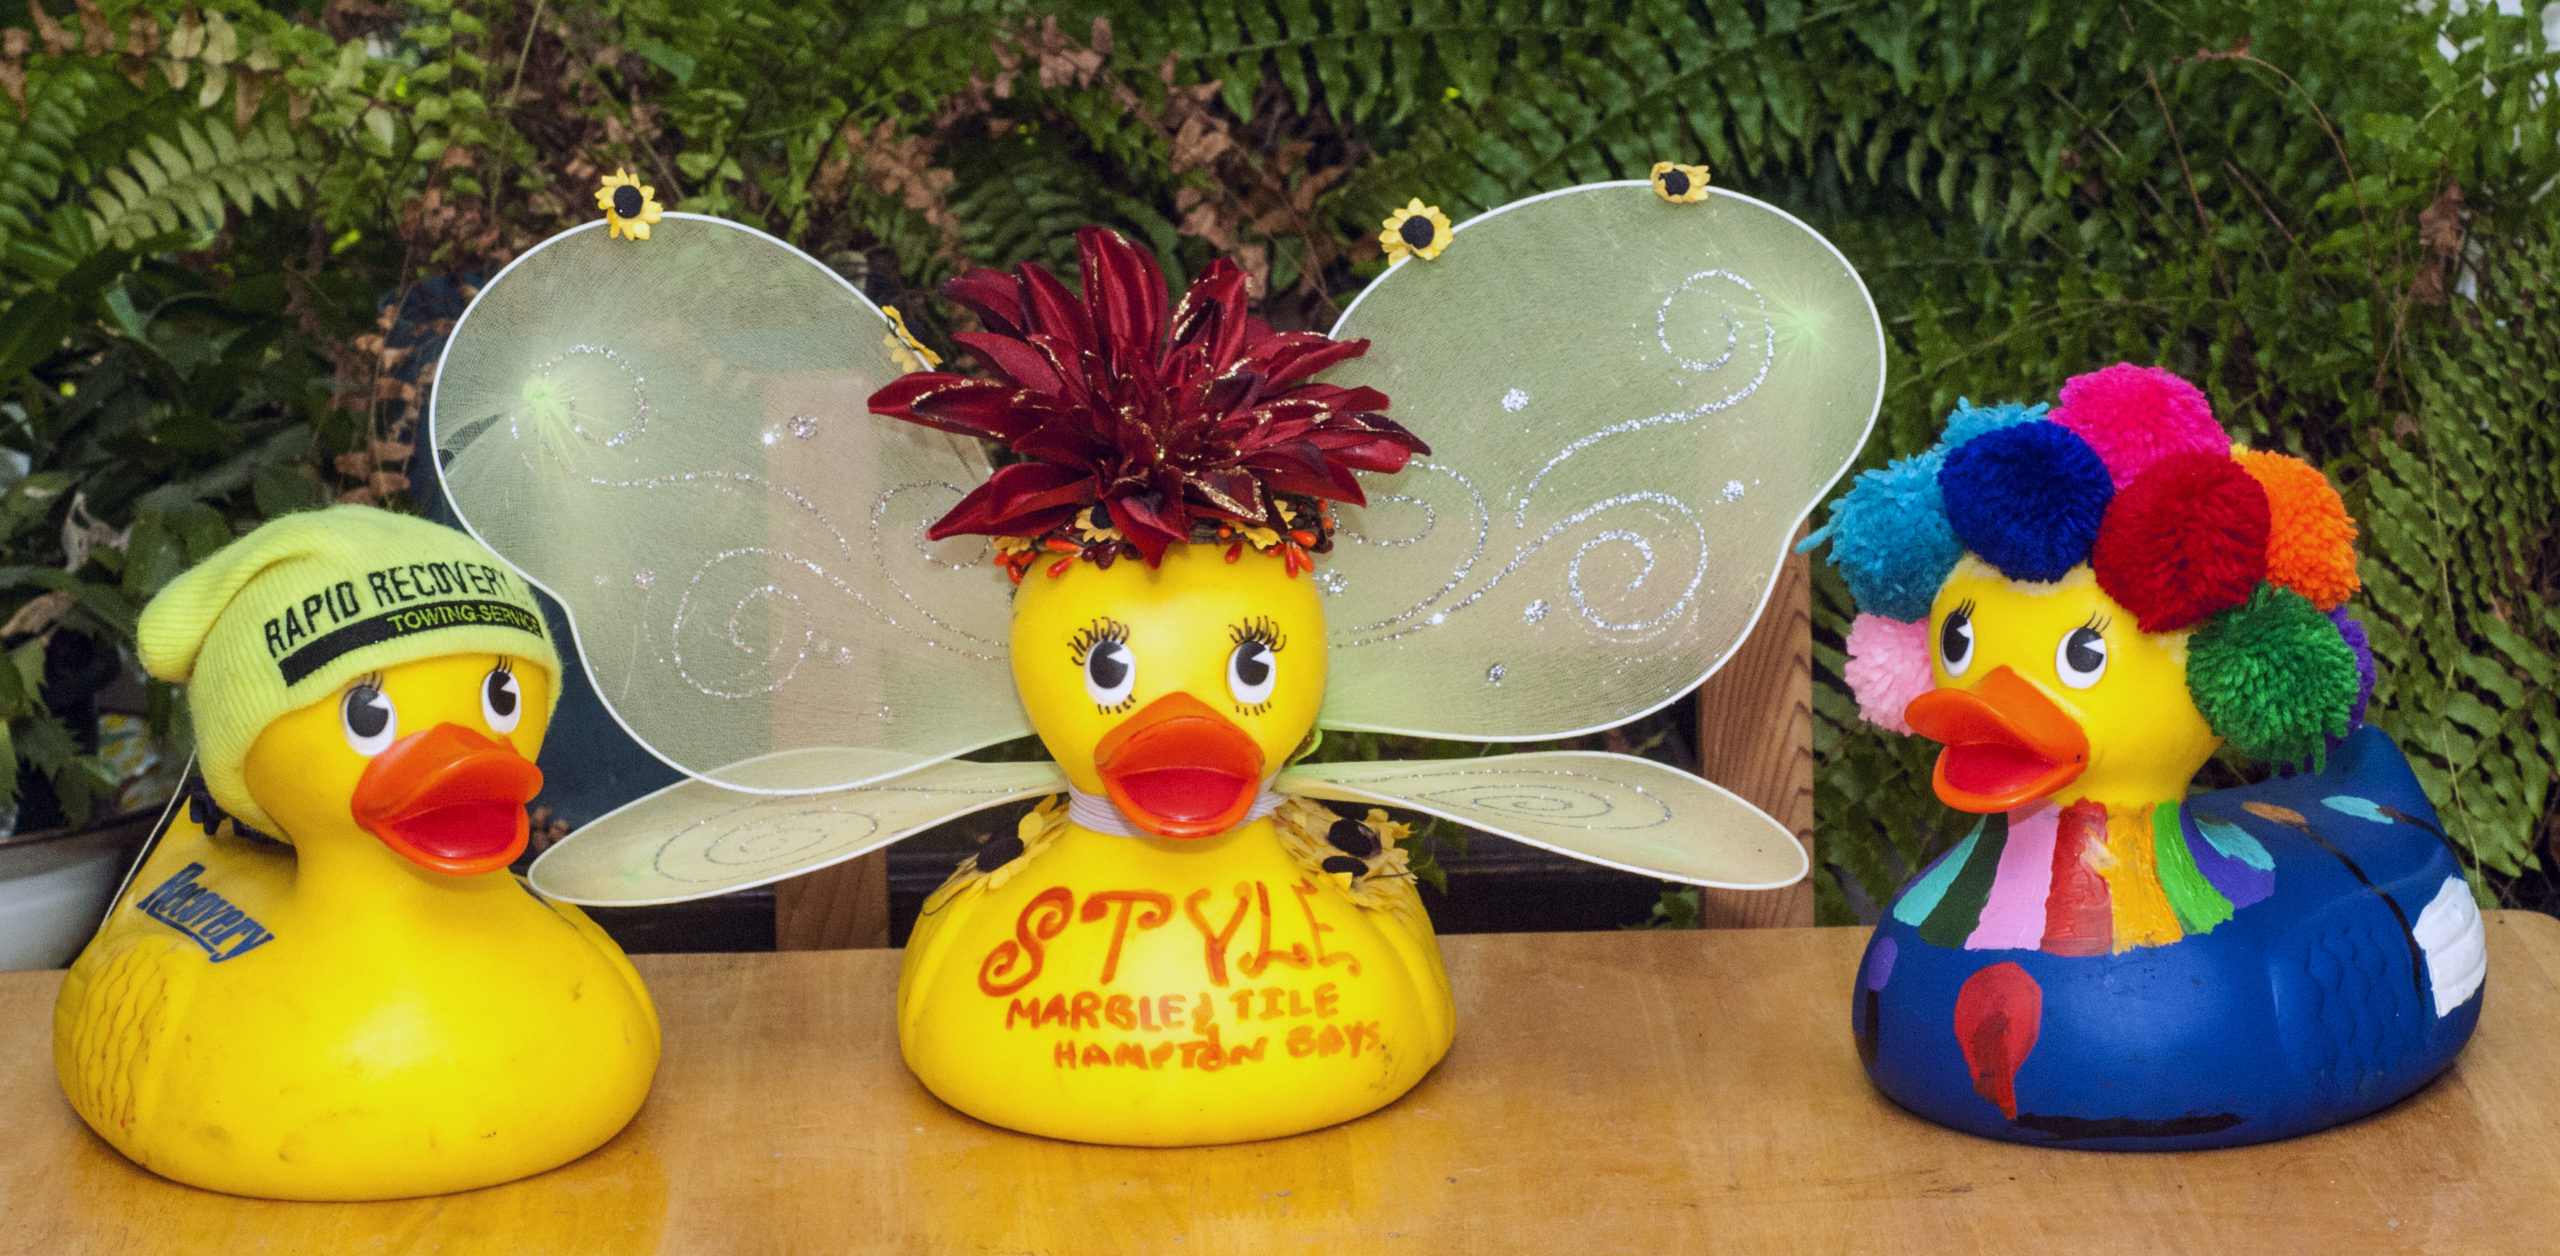 The winners of the 2021 Hampton Bays Civic Association Rubber Ducky race were: First place, Ce Style Marble, center; Second place, Rapid Recovery, left: and third Place, Peconic Physical Therapy at right.  COURTESY HAMPTON BAYS CIVIC ASSOCIATION